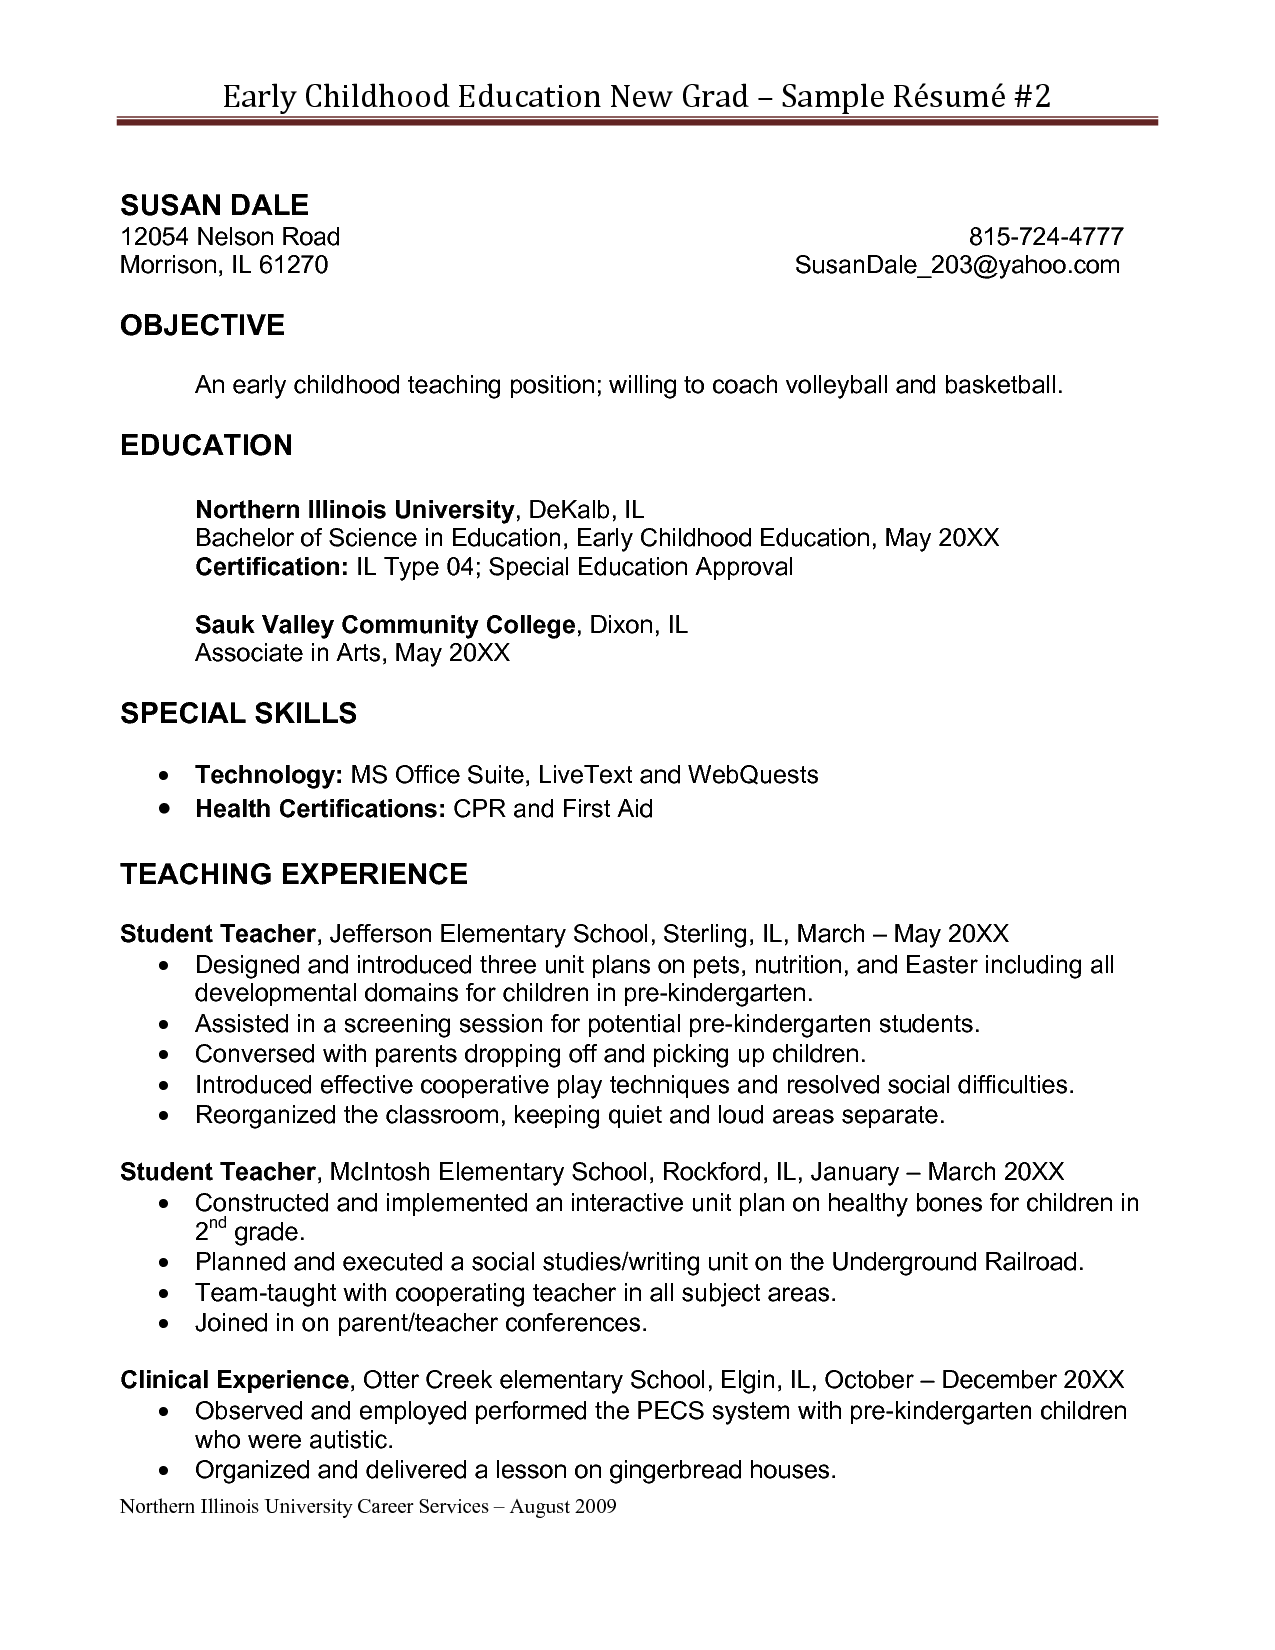 Photography Resume Samples Early Childhood Education Resume Objective Shebs